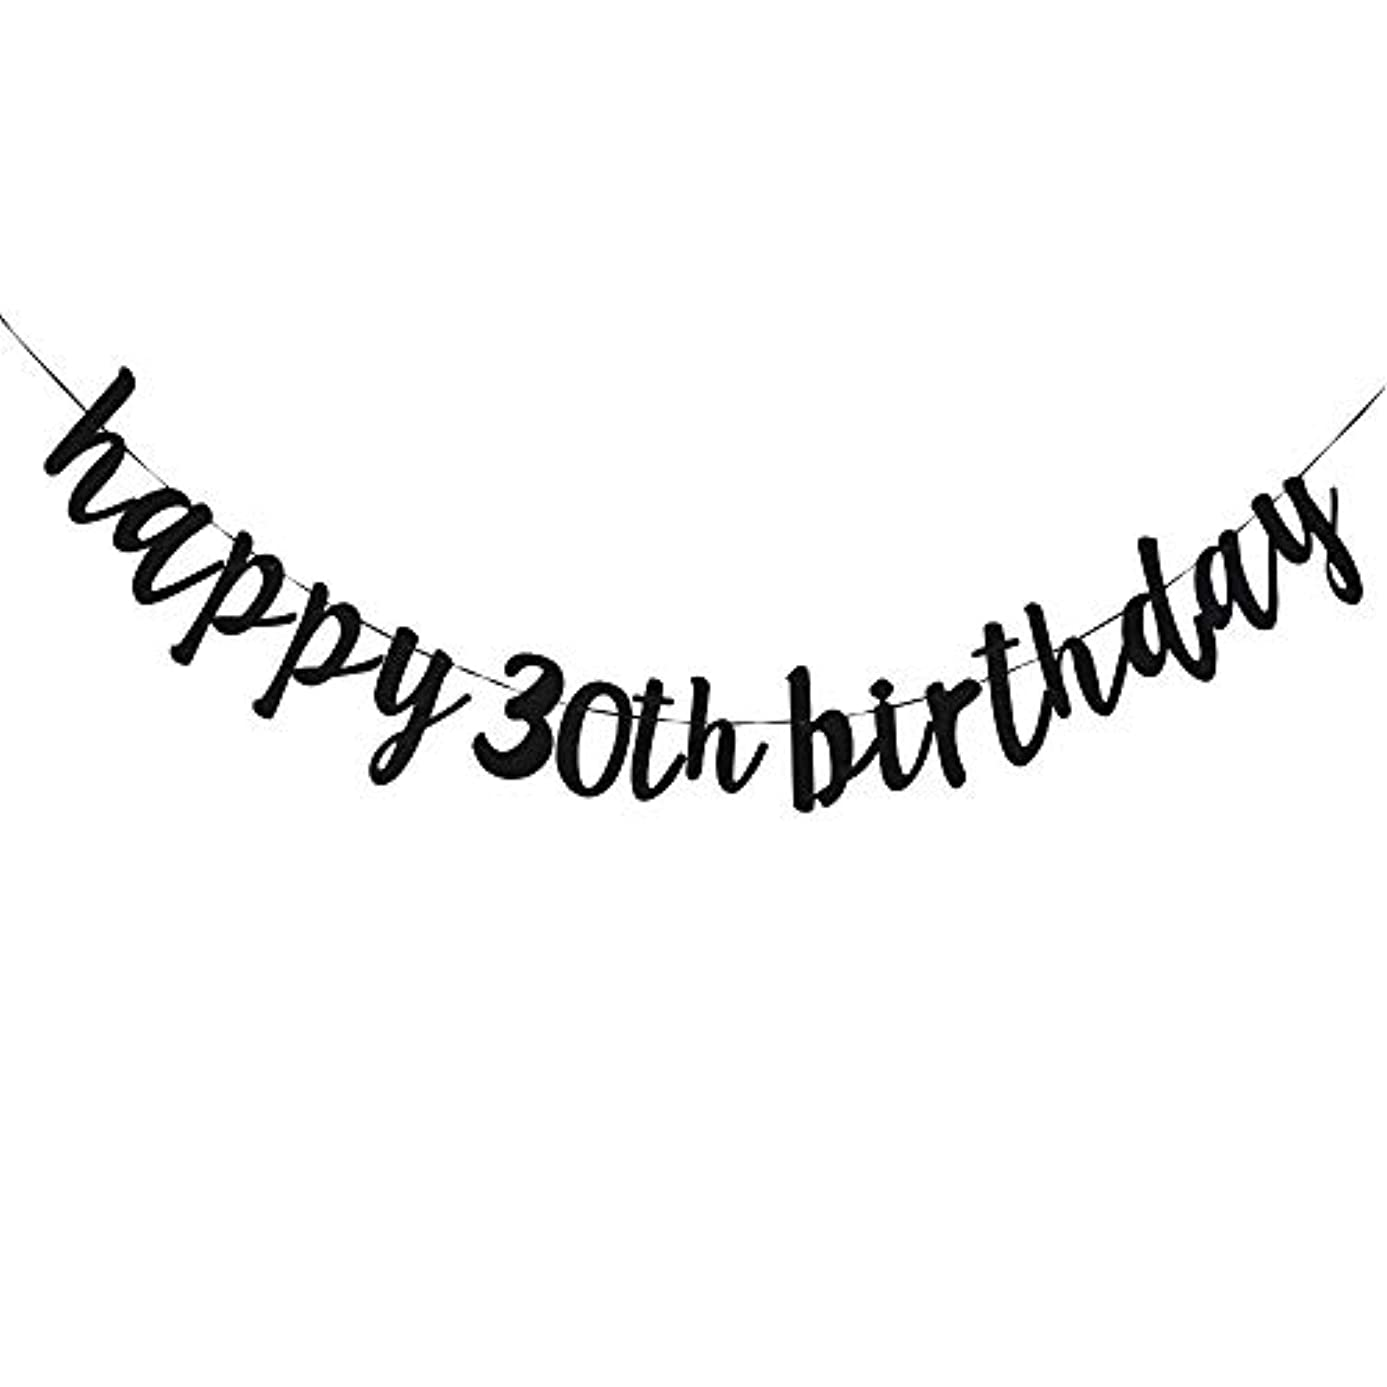 Happy 30th Birthday, 30th Birthday Party Hang Bunting Sign Decorations Photo Props, Party Favors, Supplies, Gifts, Themes and Ideas